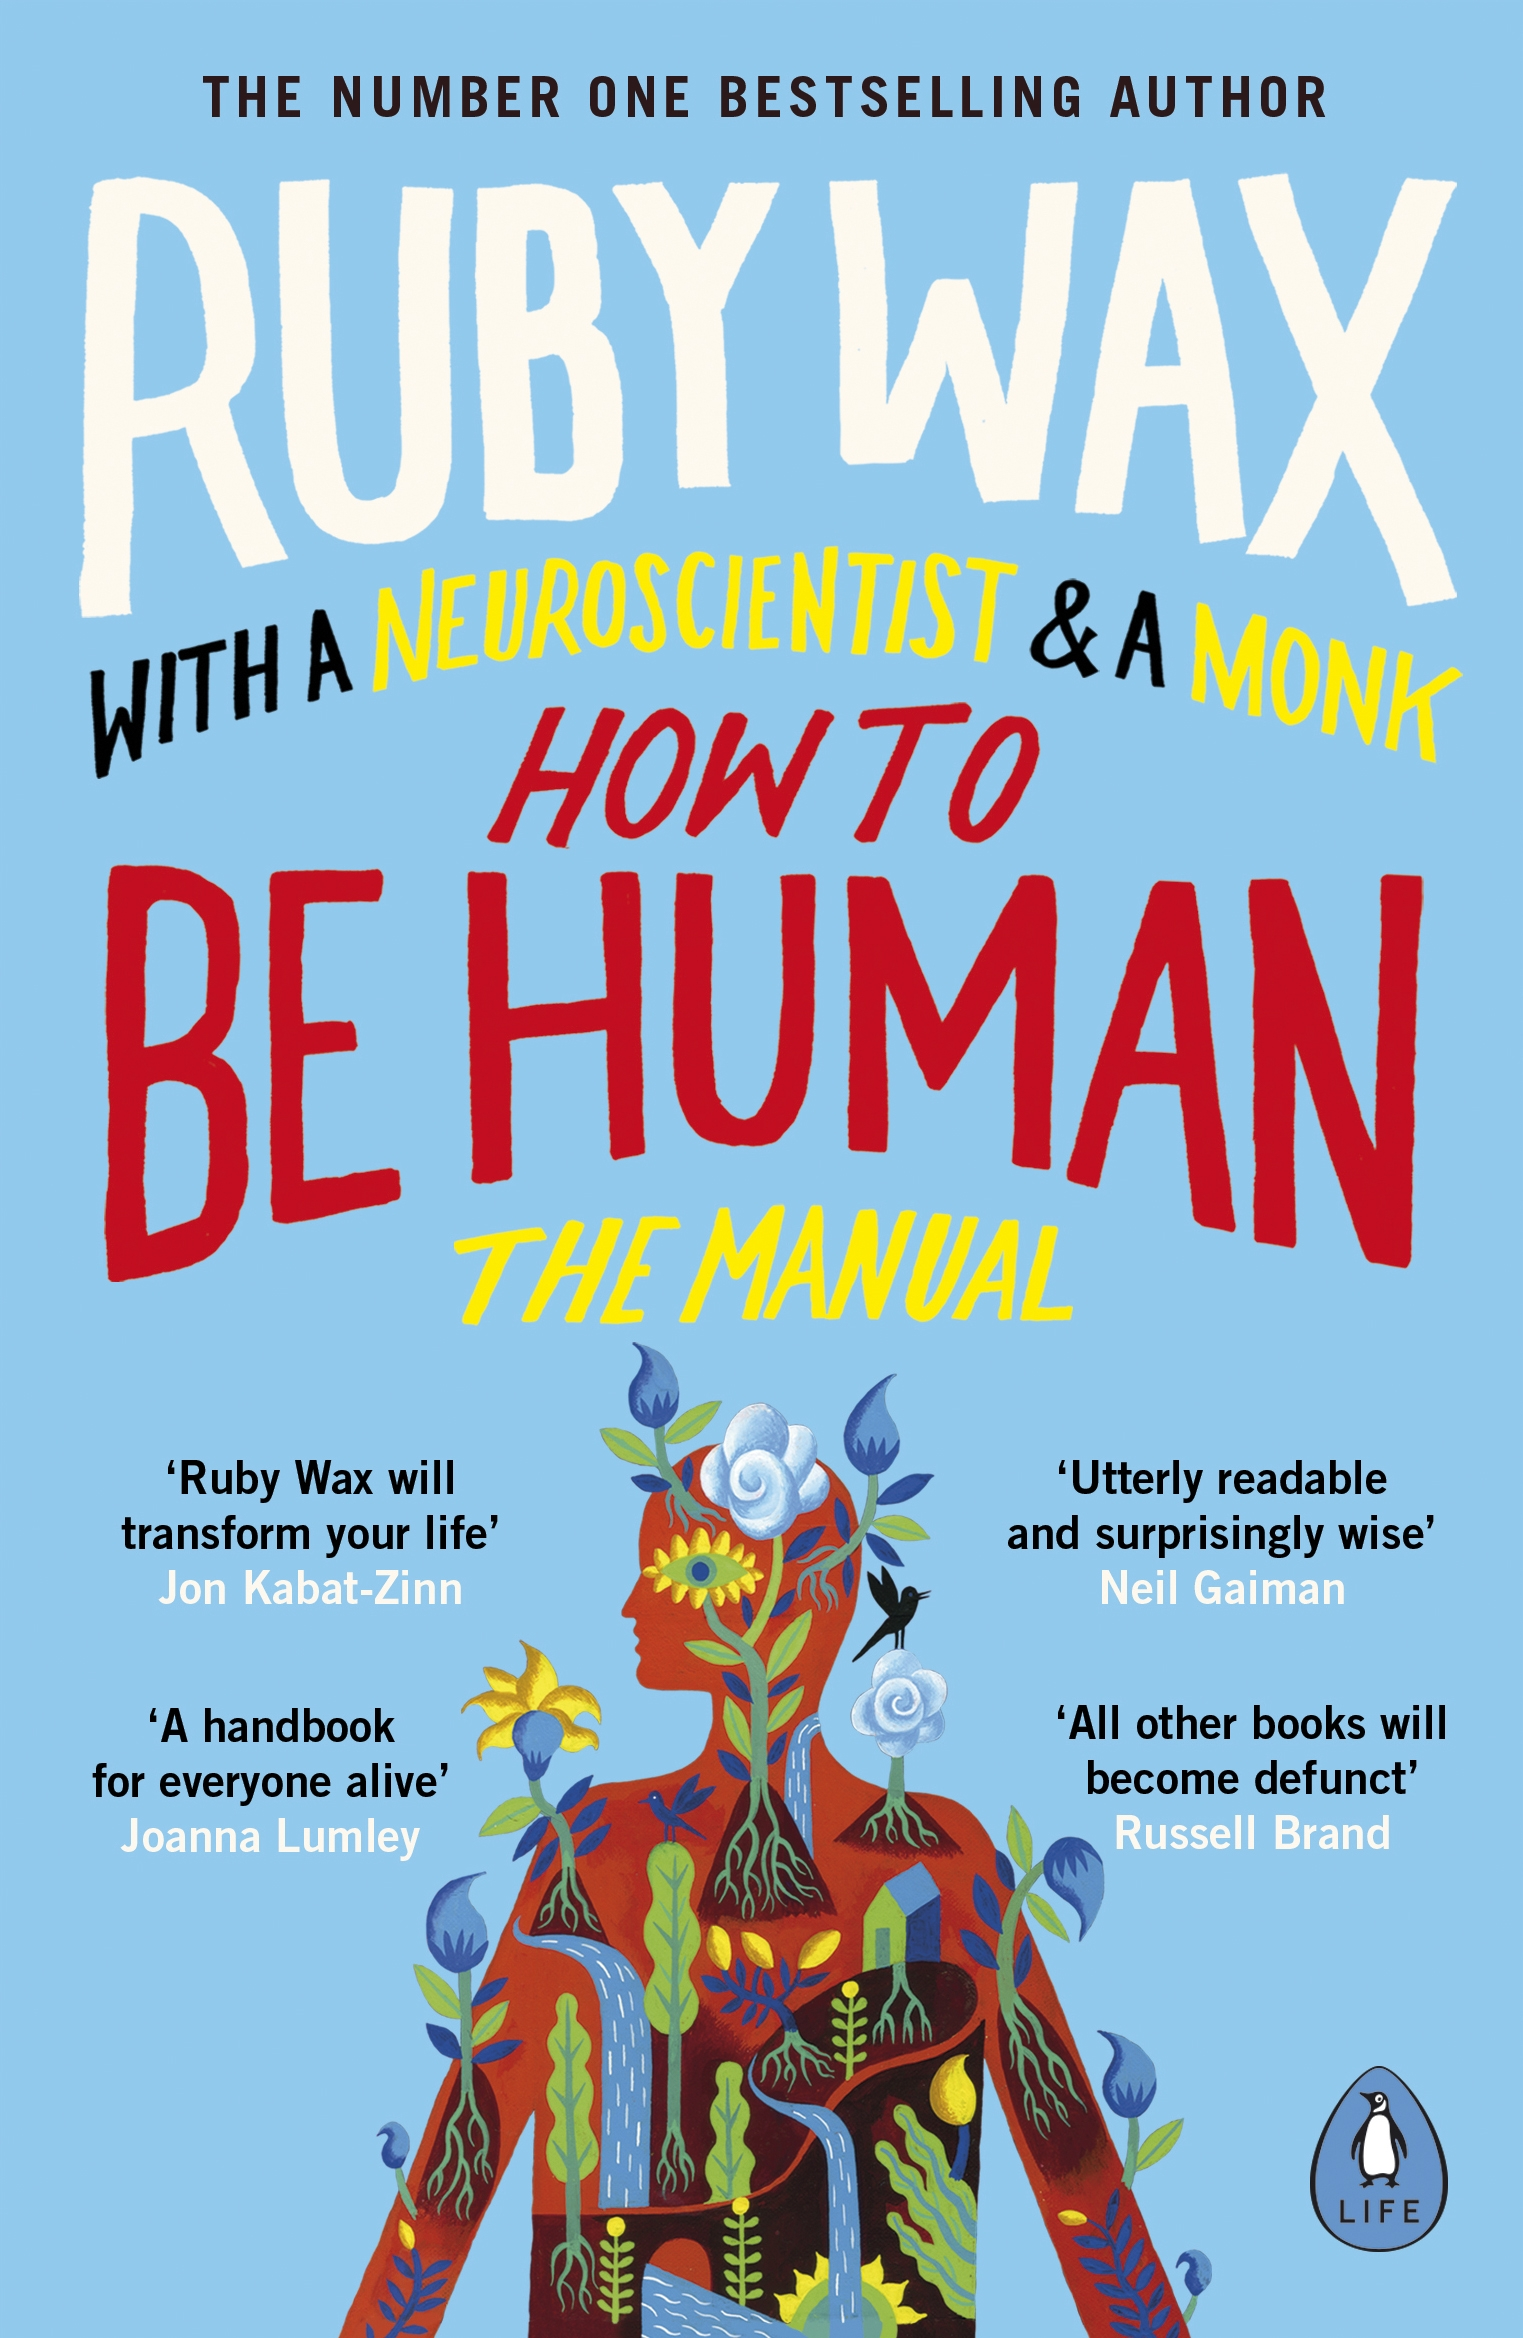 How to be Human paperback cover.jpg